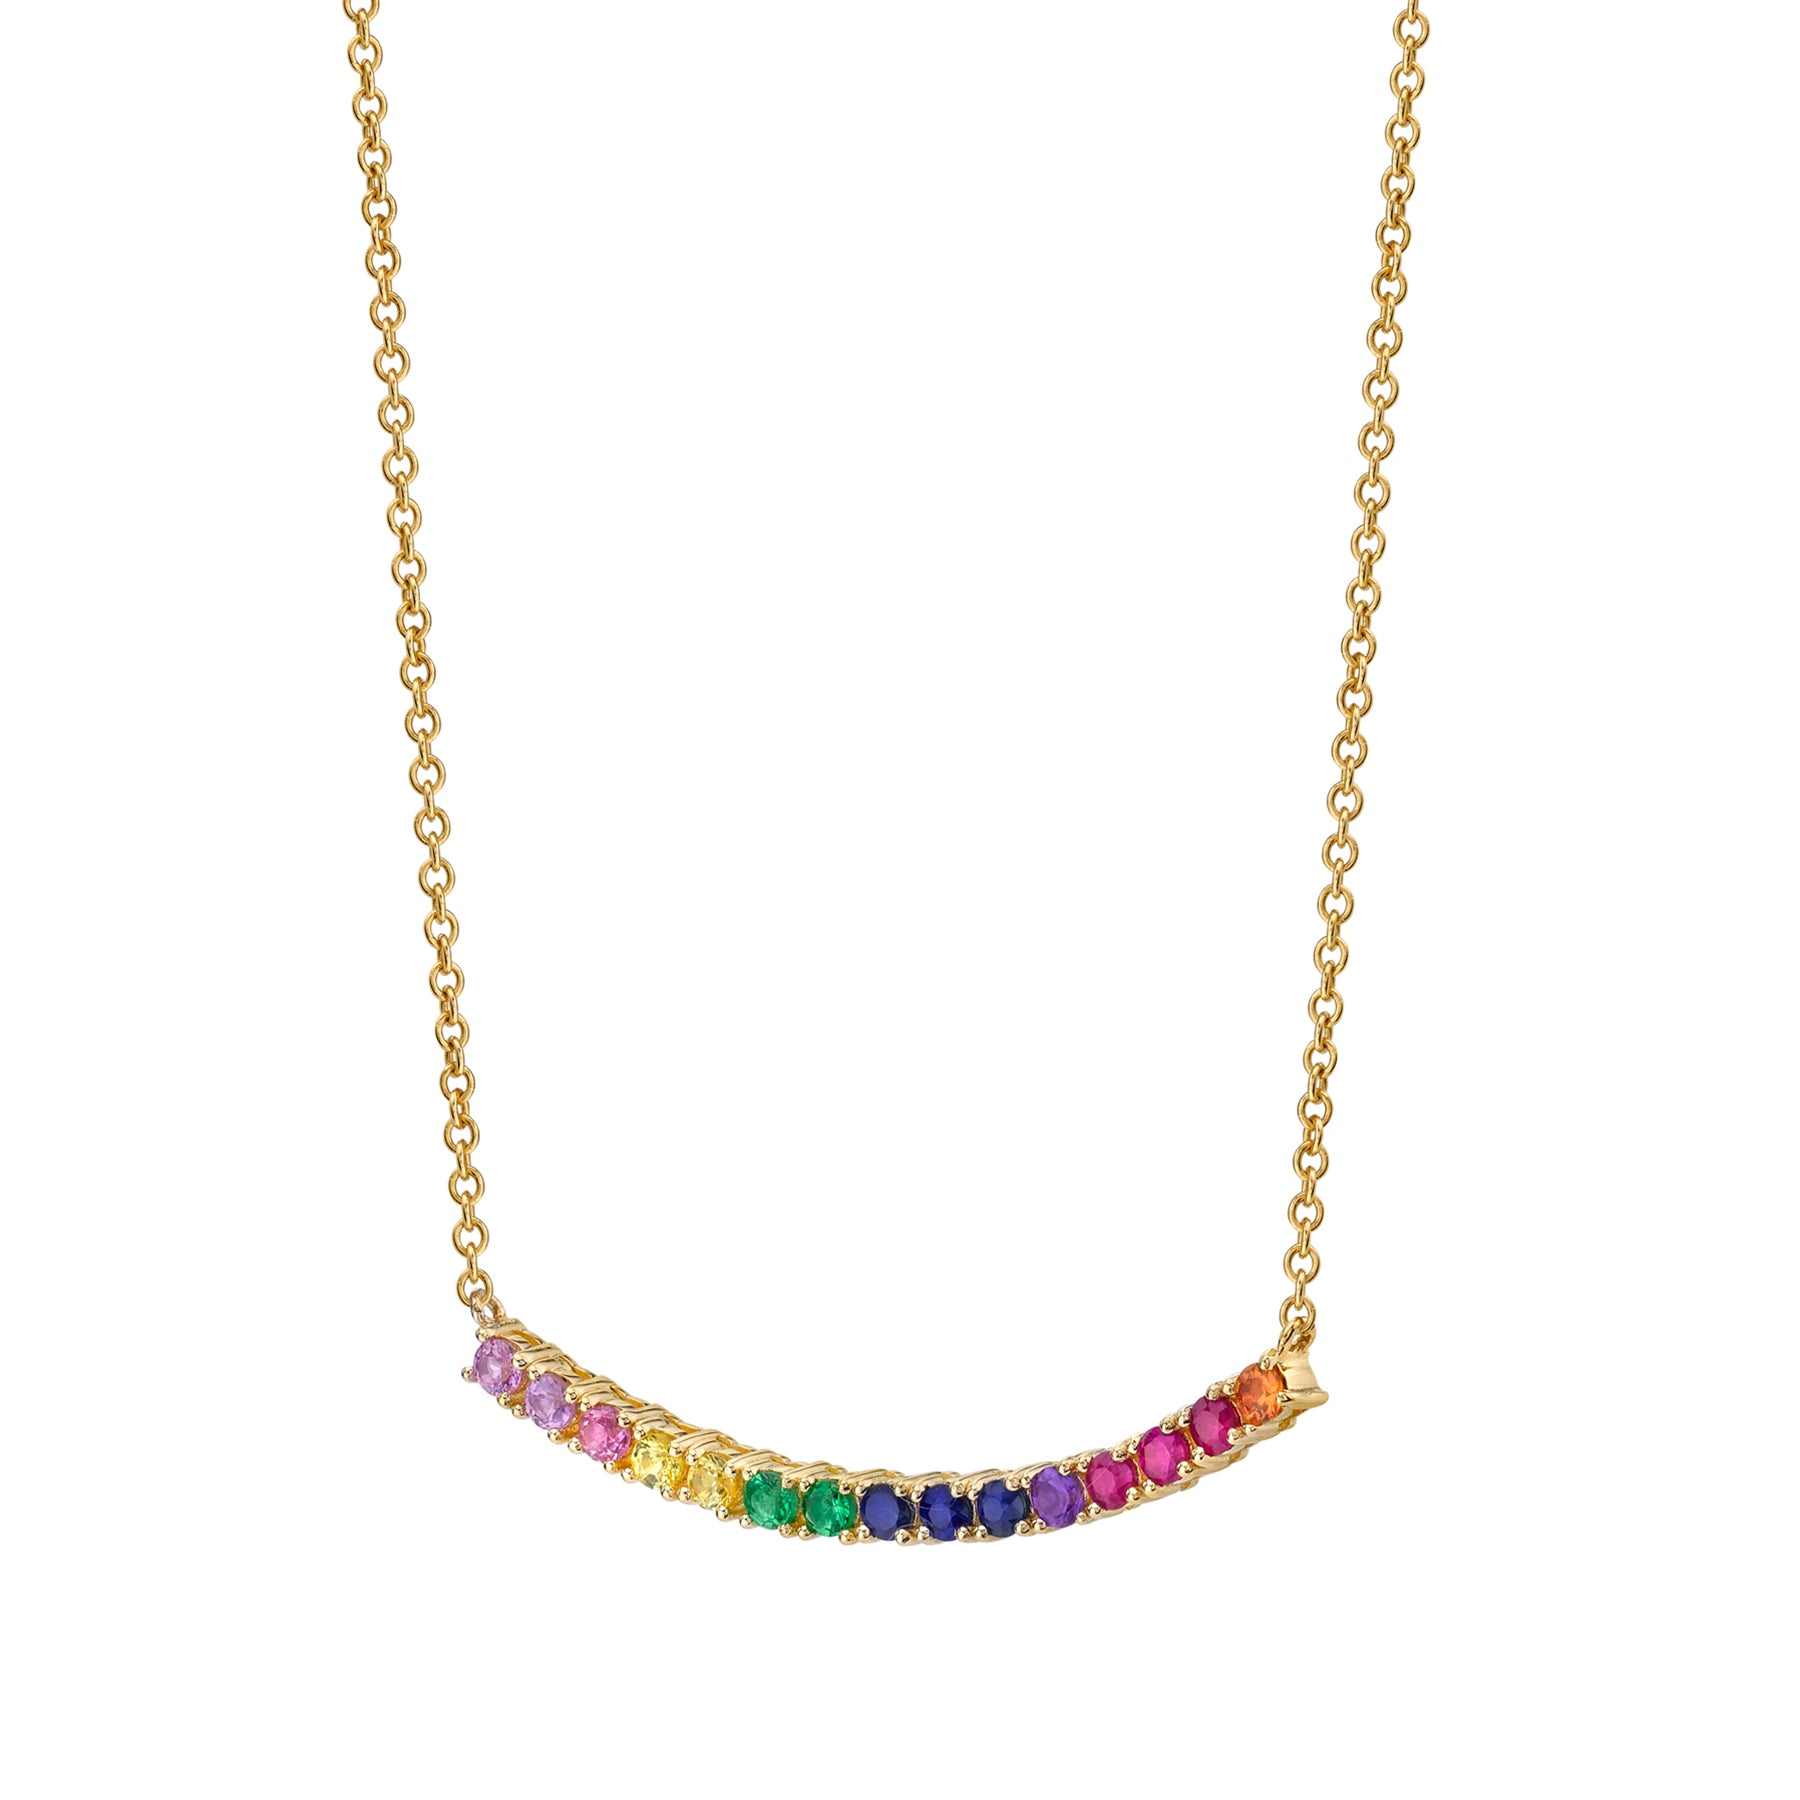 necklace years jewelry crystal products fashion rainbow light gold